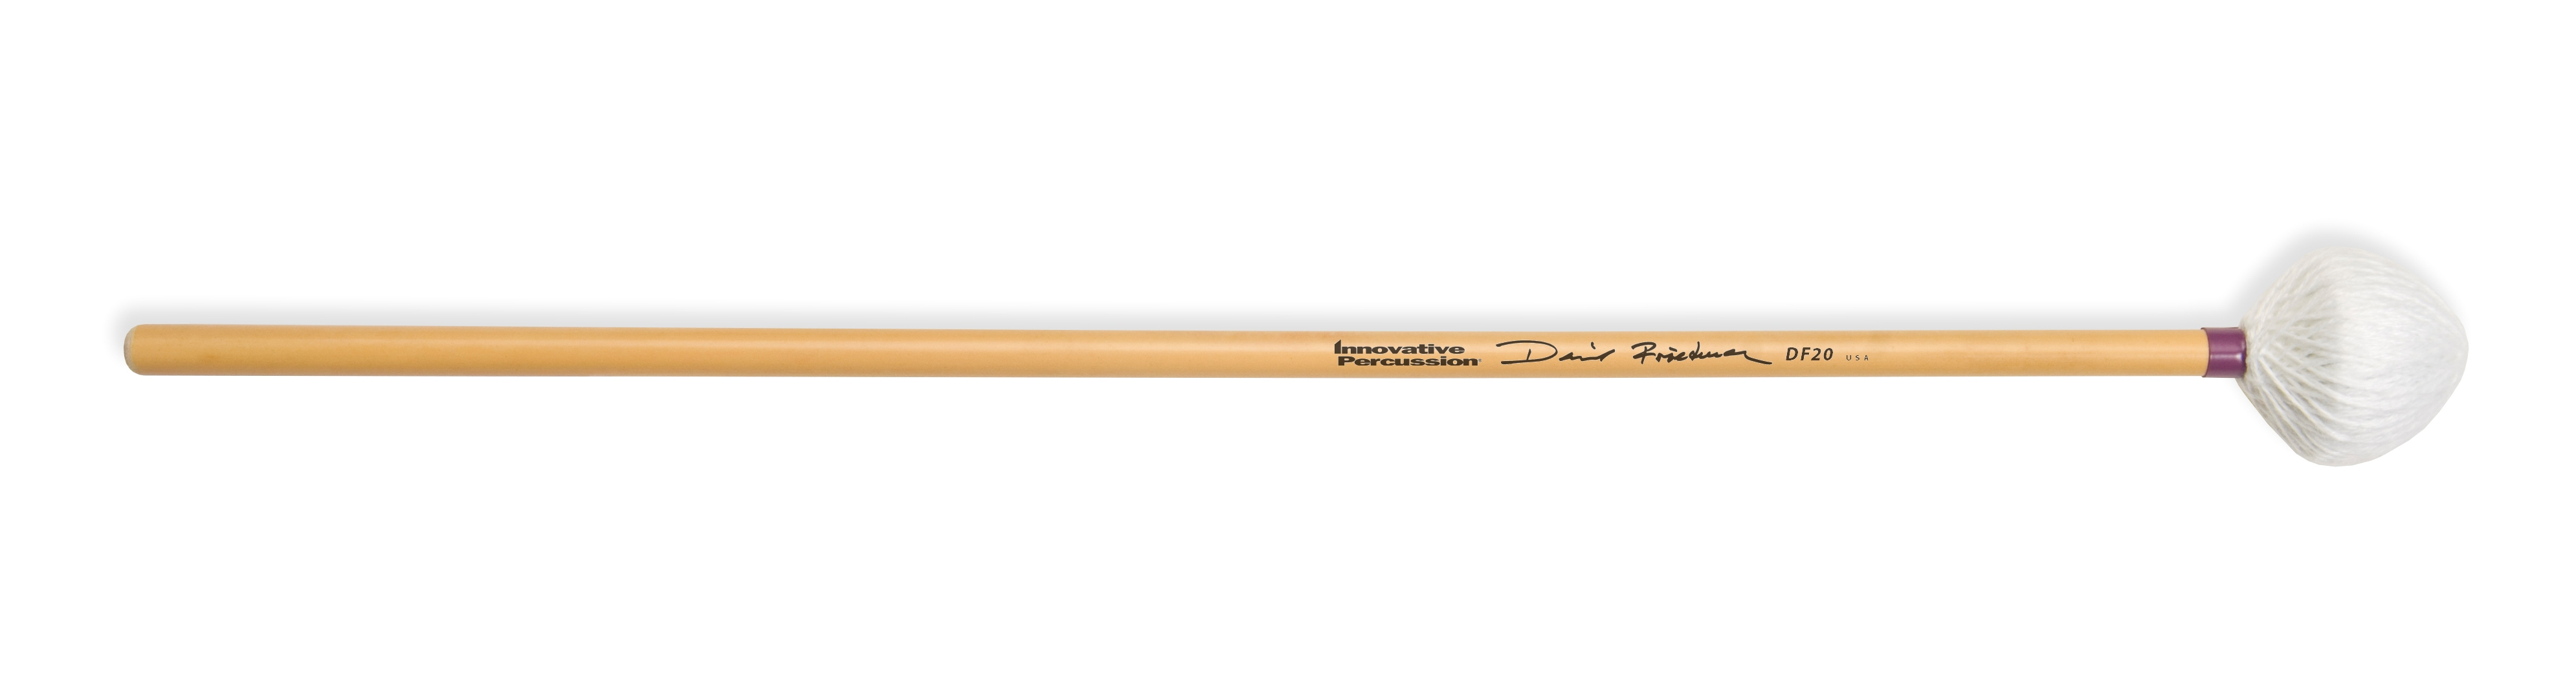 Innovative Percussion DF20 David Friedman Soft Marimba Mallets with Rattan Handles by Innovative Percussion